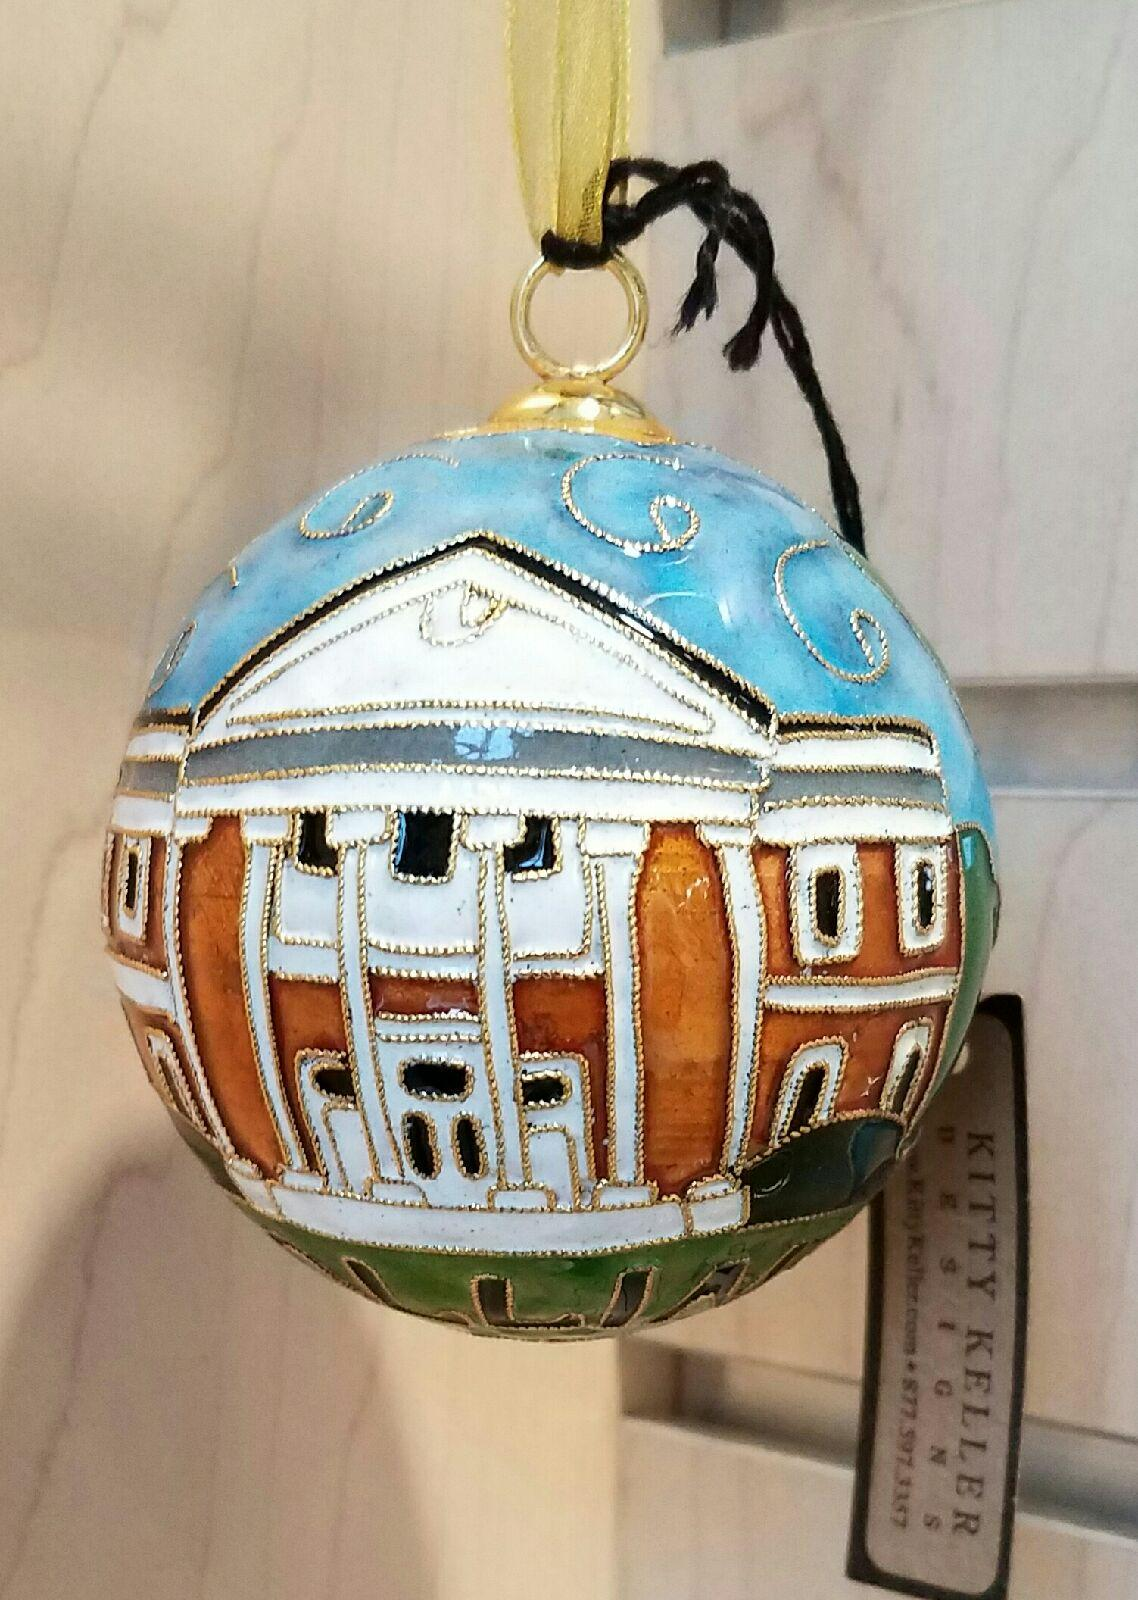 Cloisonne Ball Ornament -Cocke Building